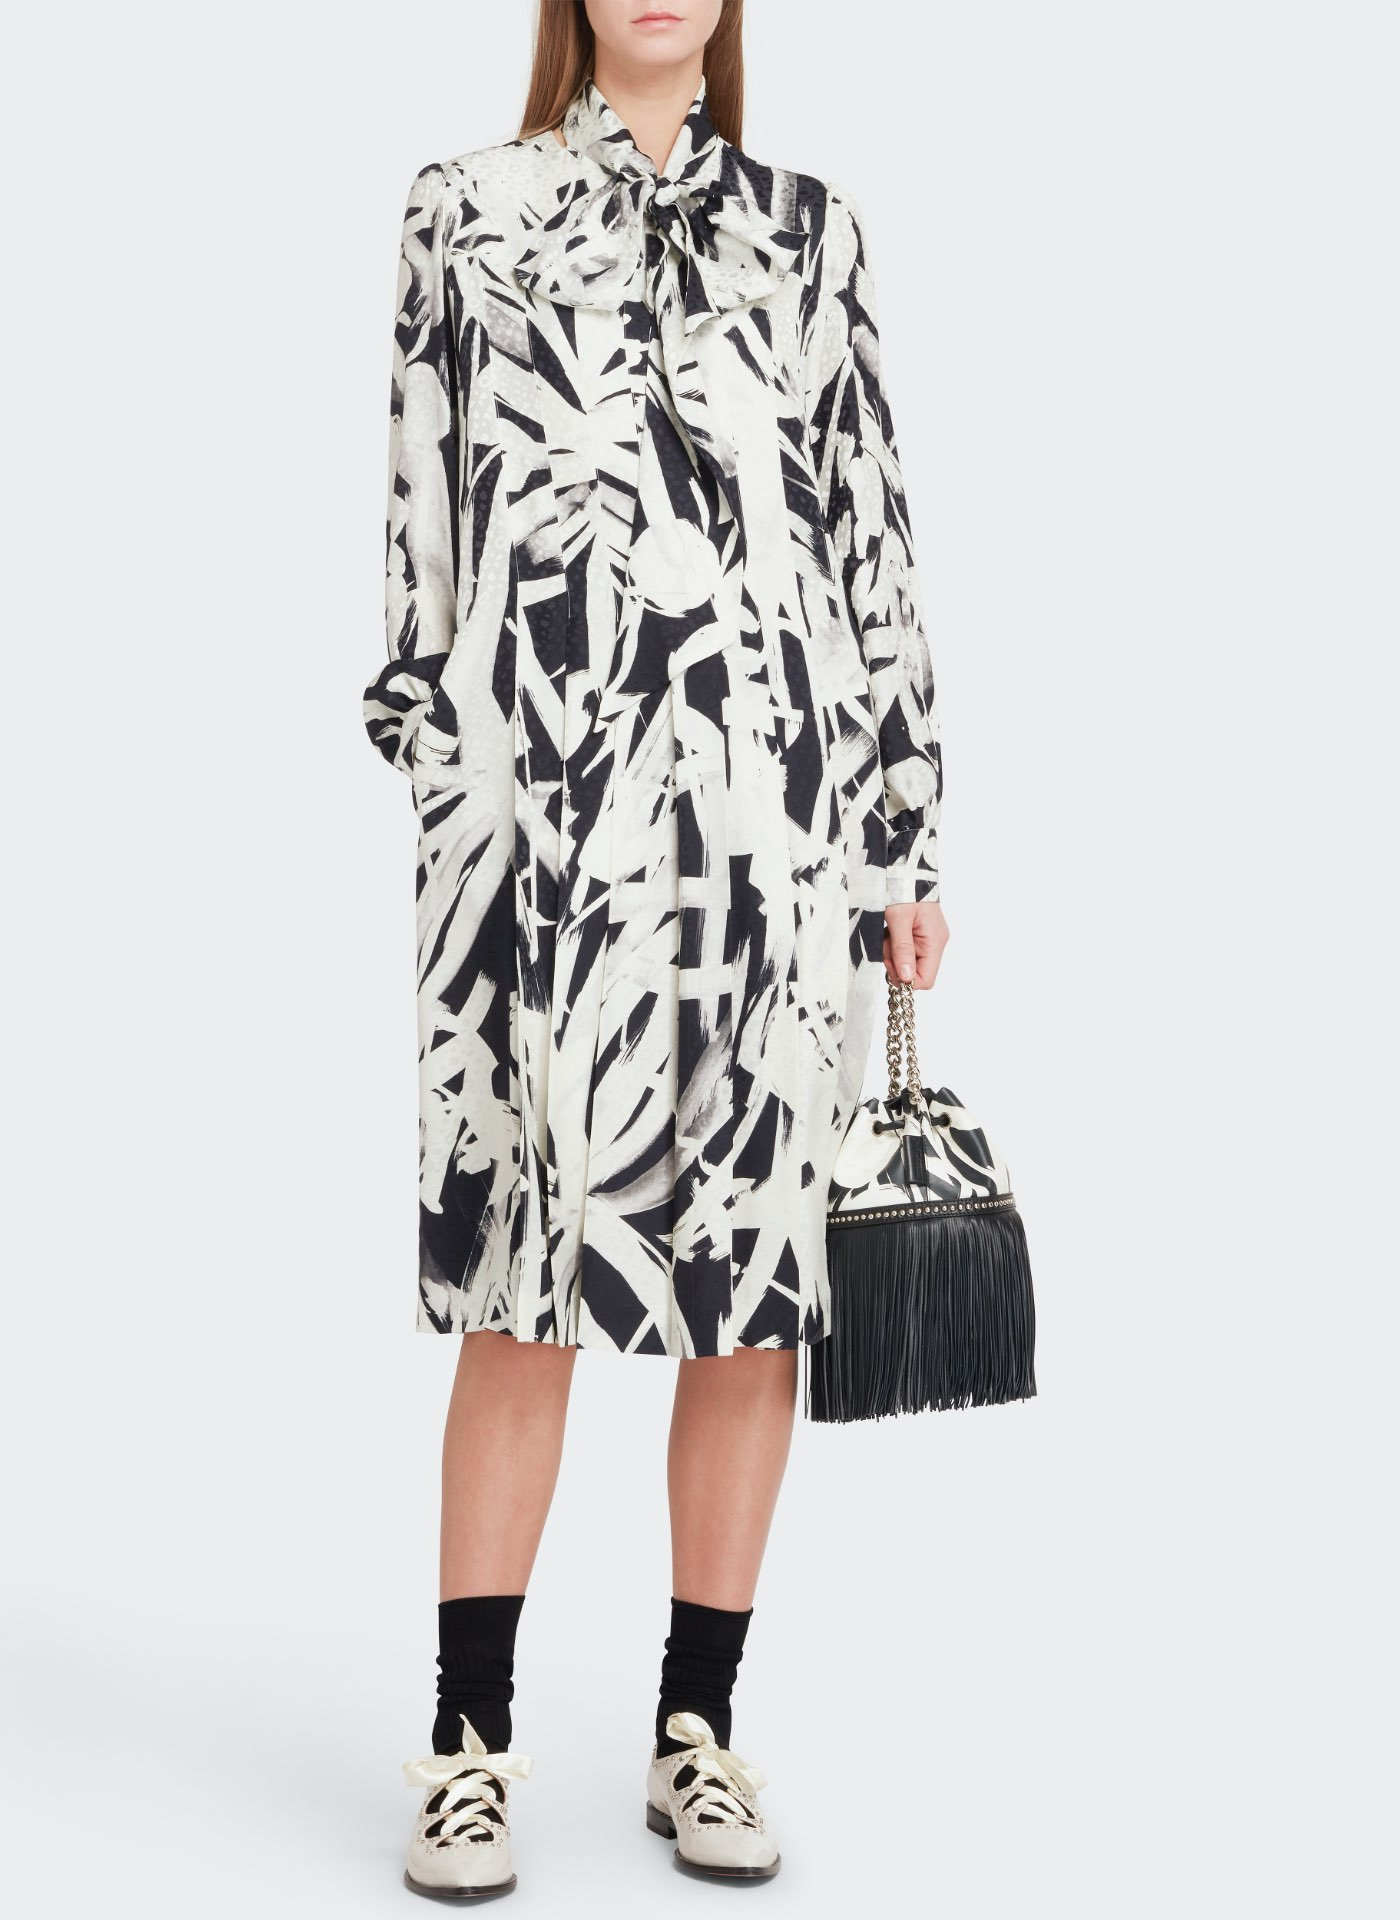 Womenswear model wearing a white and black pattern J&M dress with a black leather bag